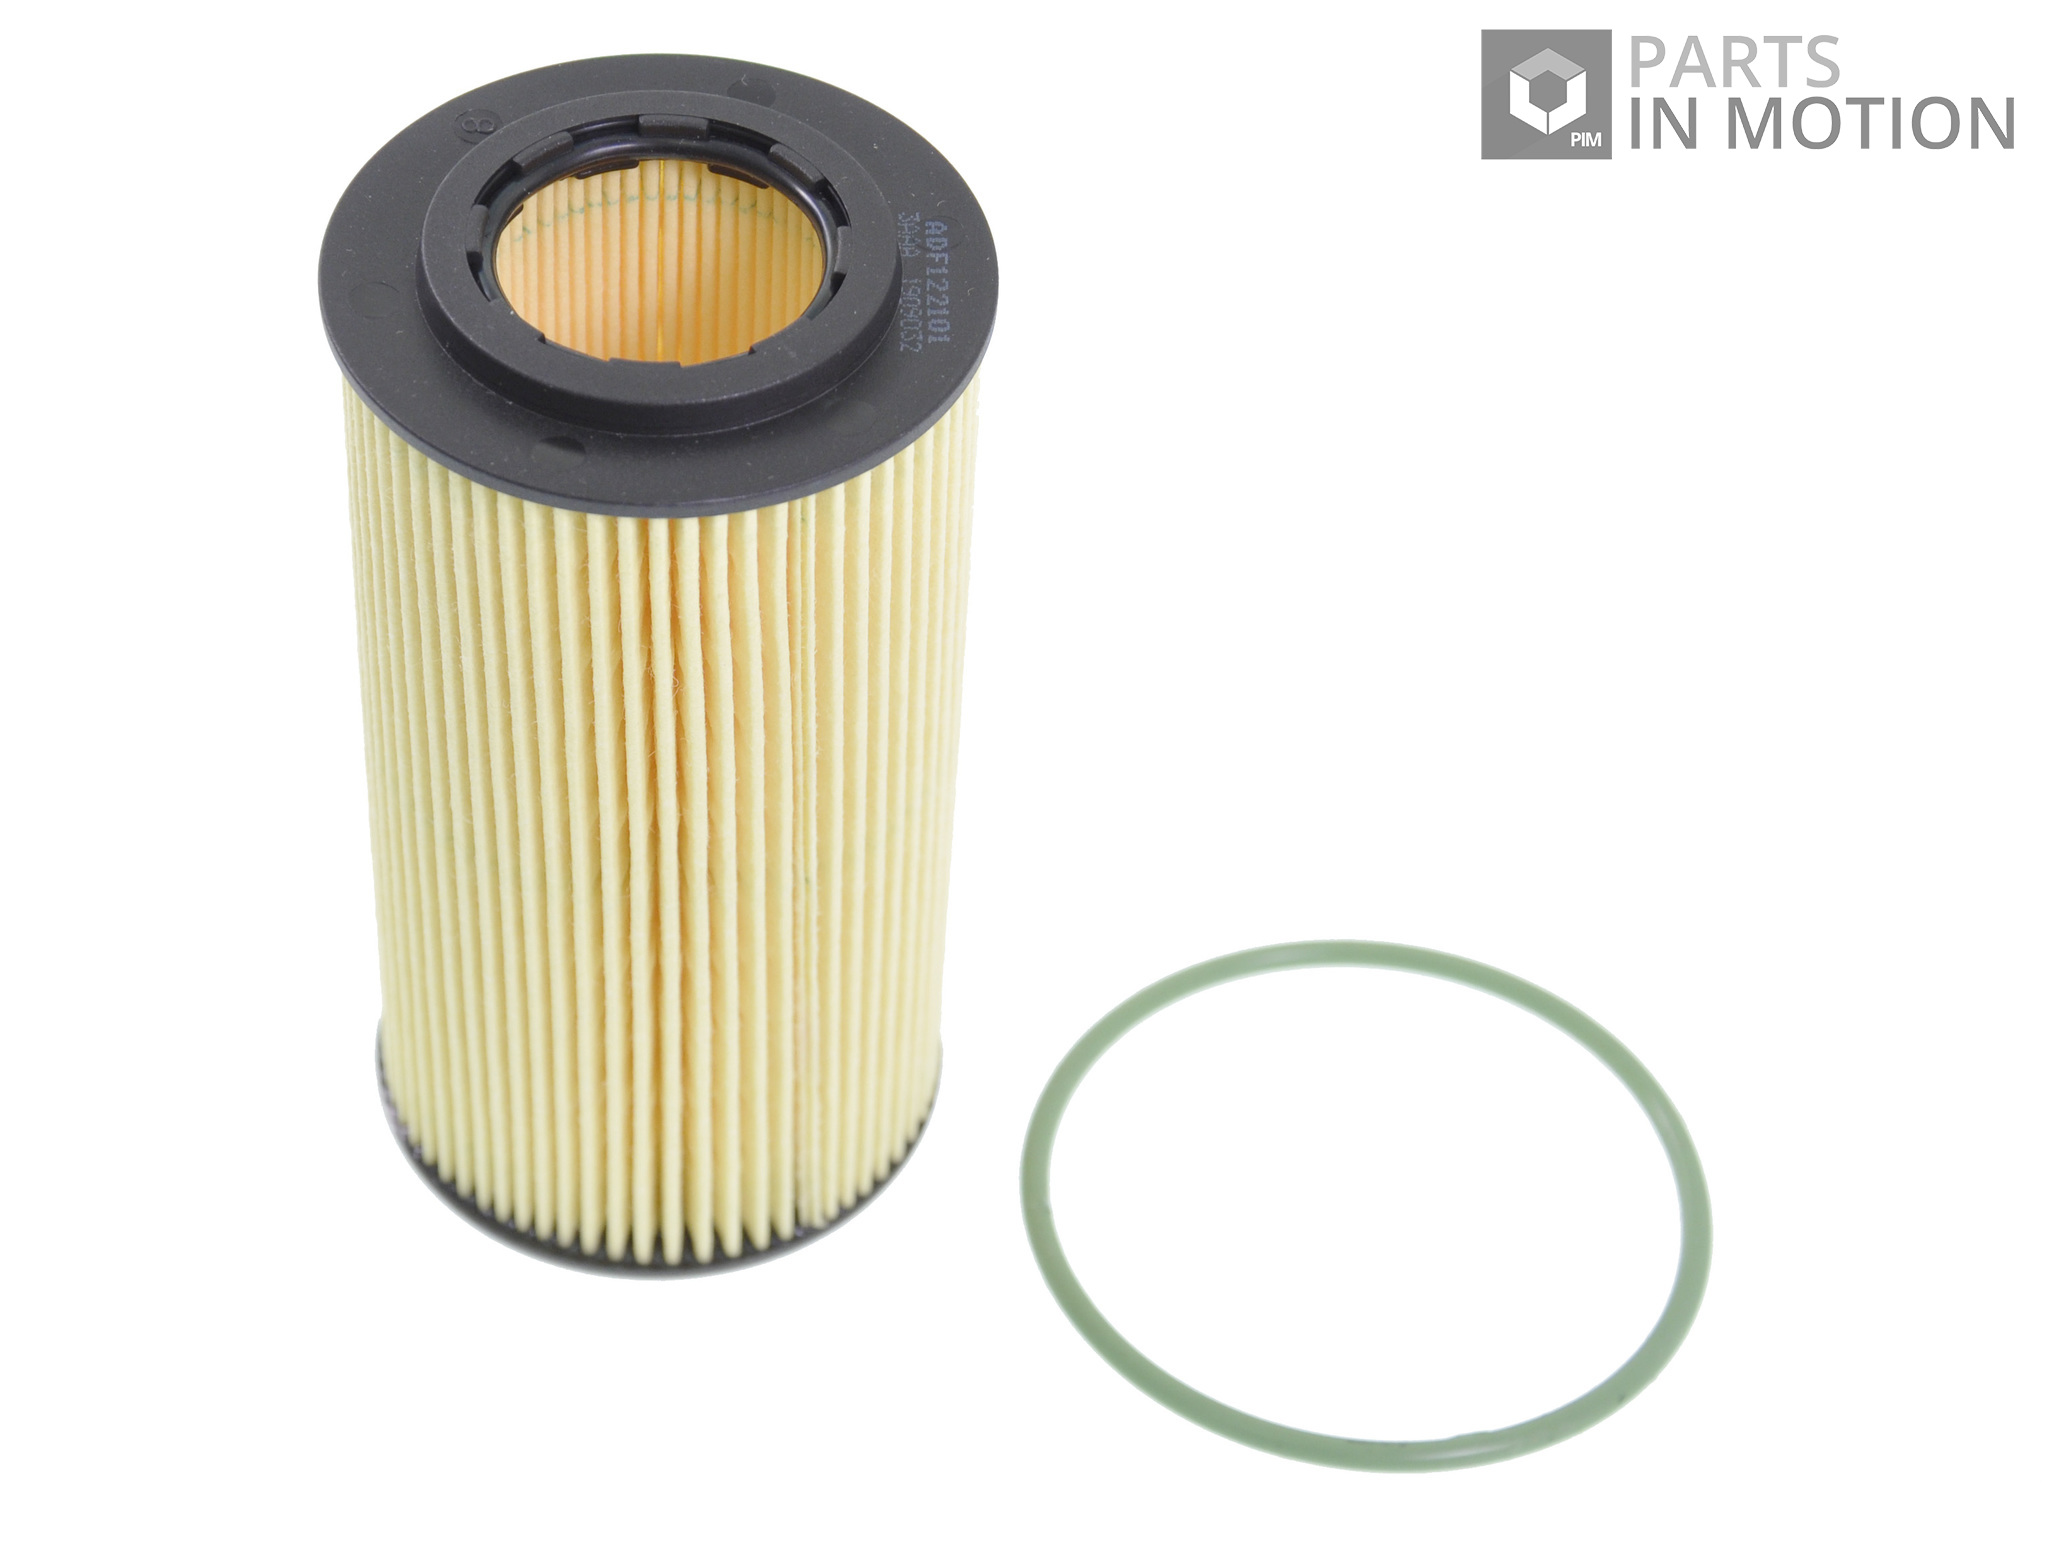 FORD MONDEO 2.5 Oil Filter 2007 on ADF122101 Blue Print 1421704 6G9N6744BA New